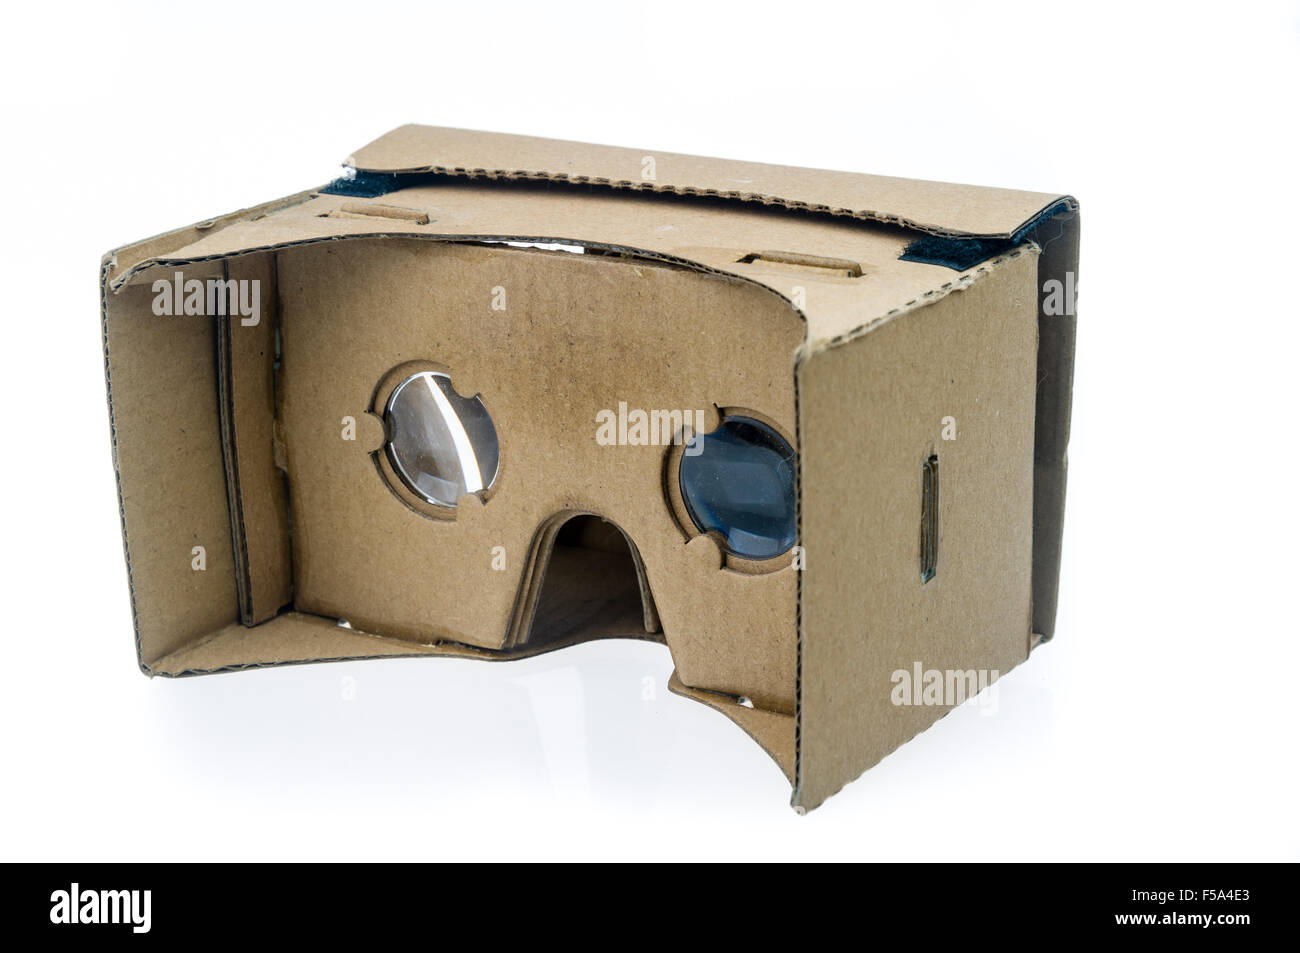 Google Cardboard, a 3D Virtual Reality attachment for smartphones - Stock Image